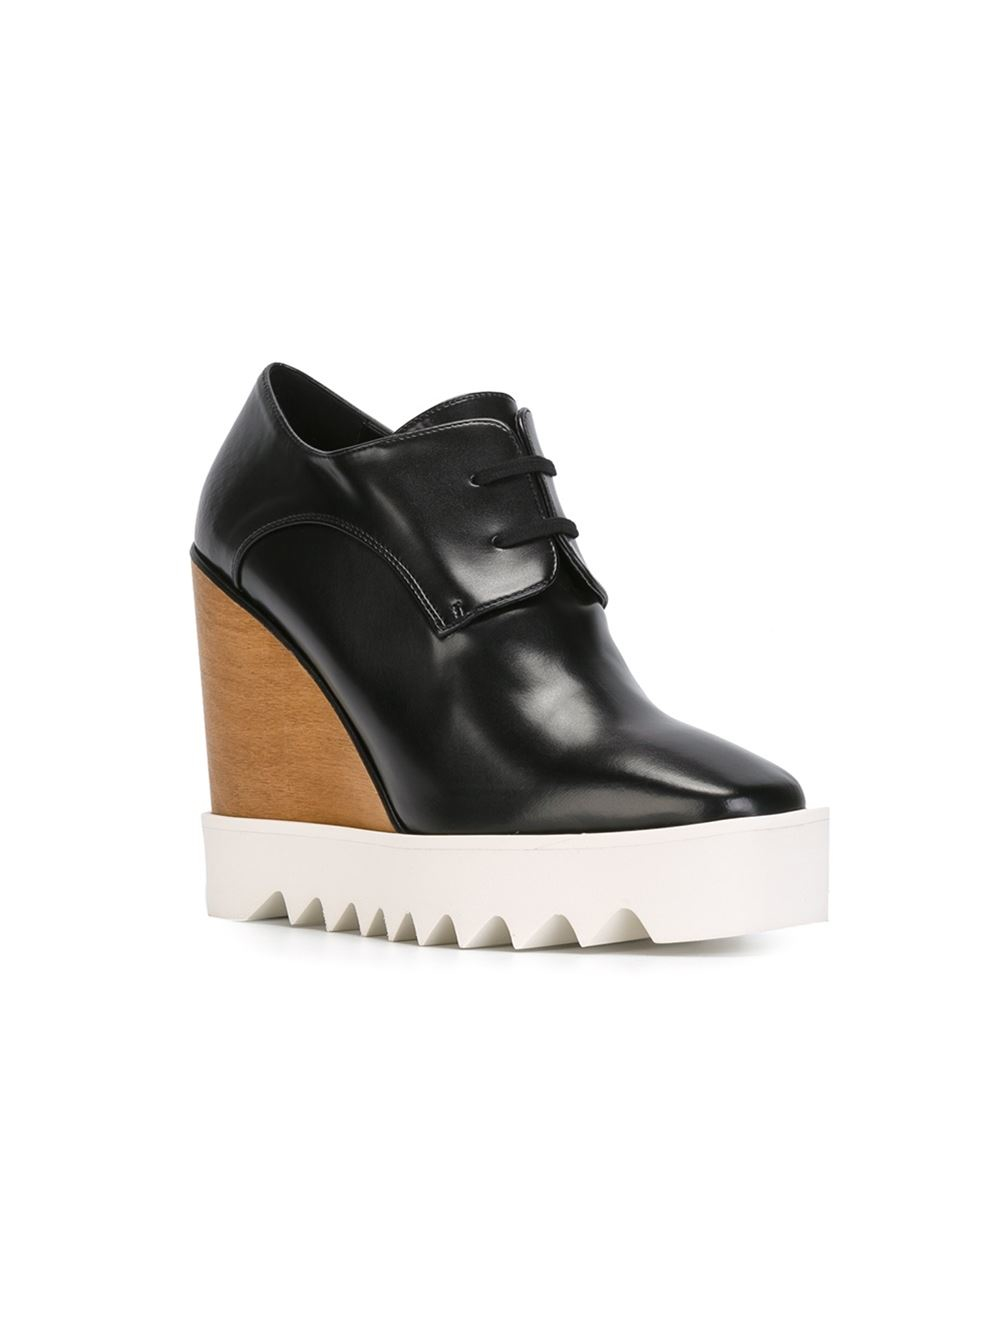 Black wedge shoes with laces